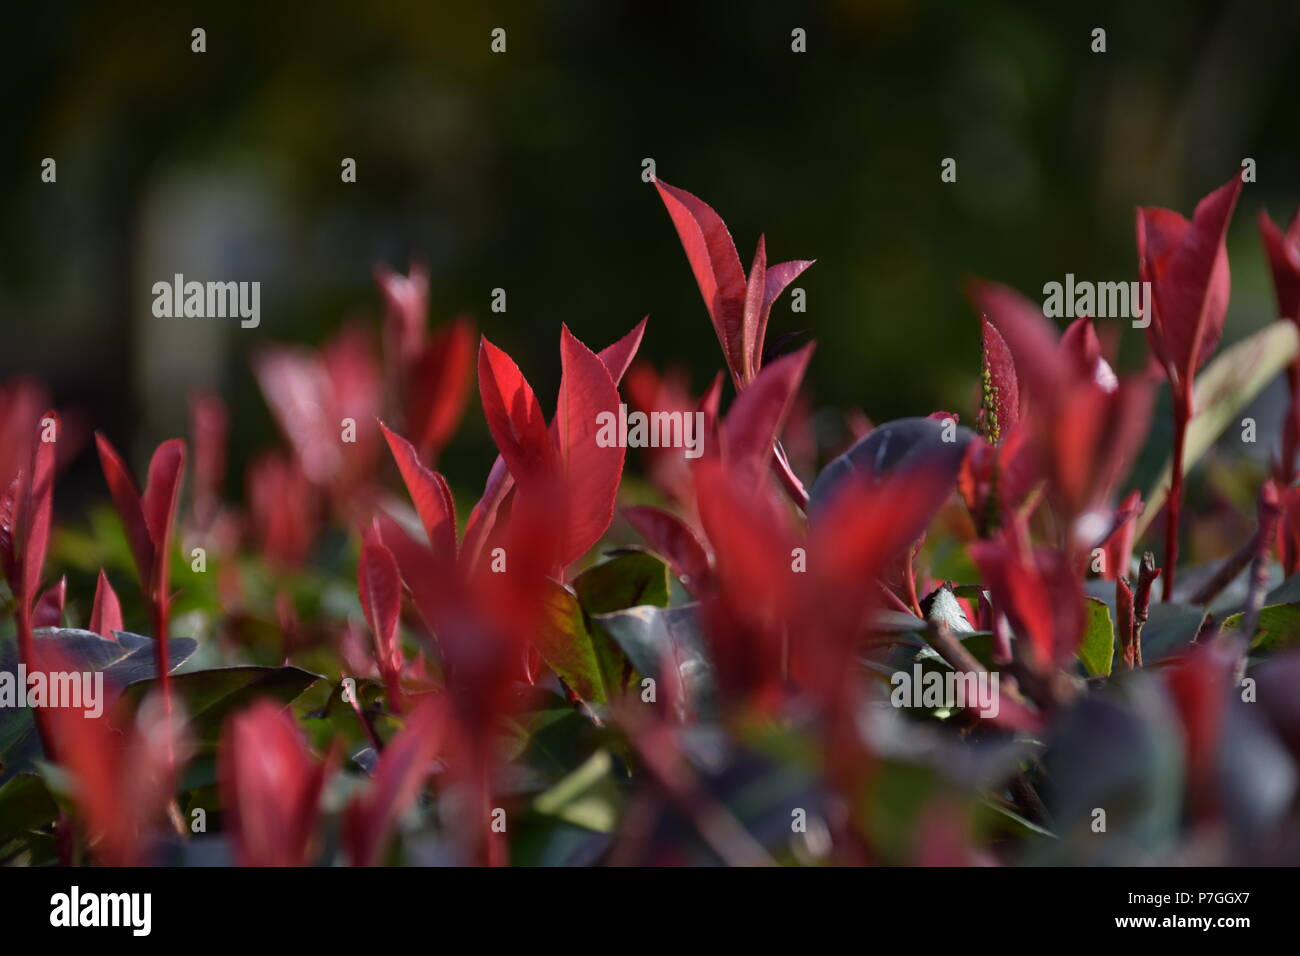 red leaves - Stock Image